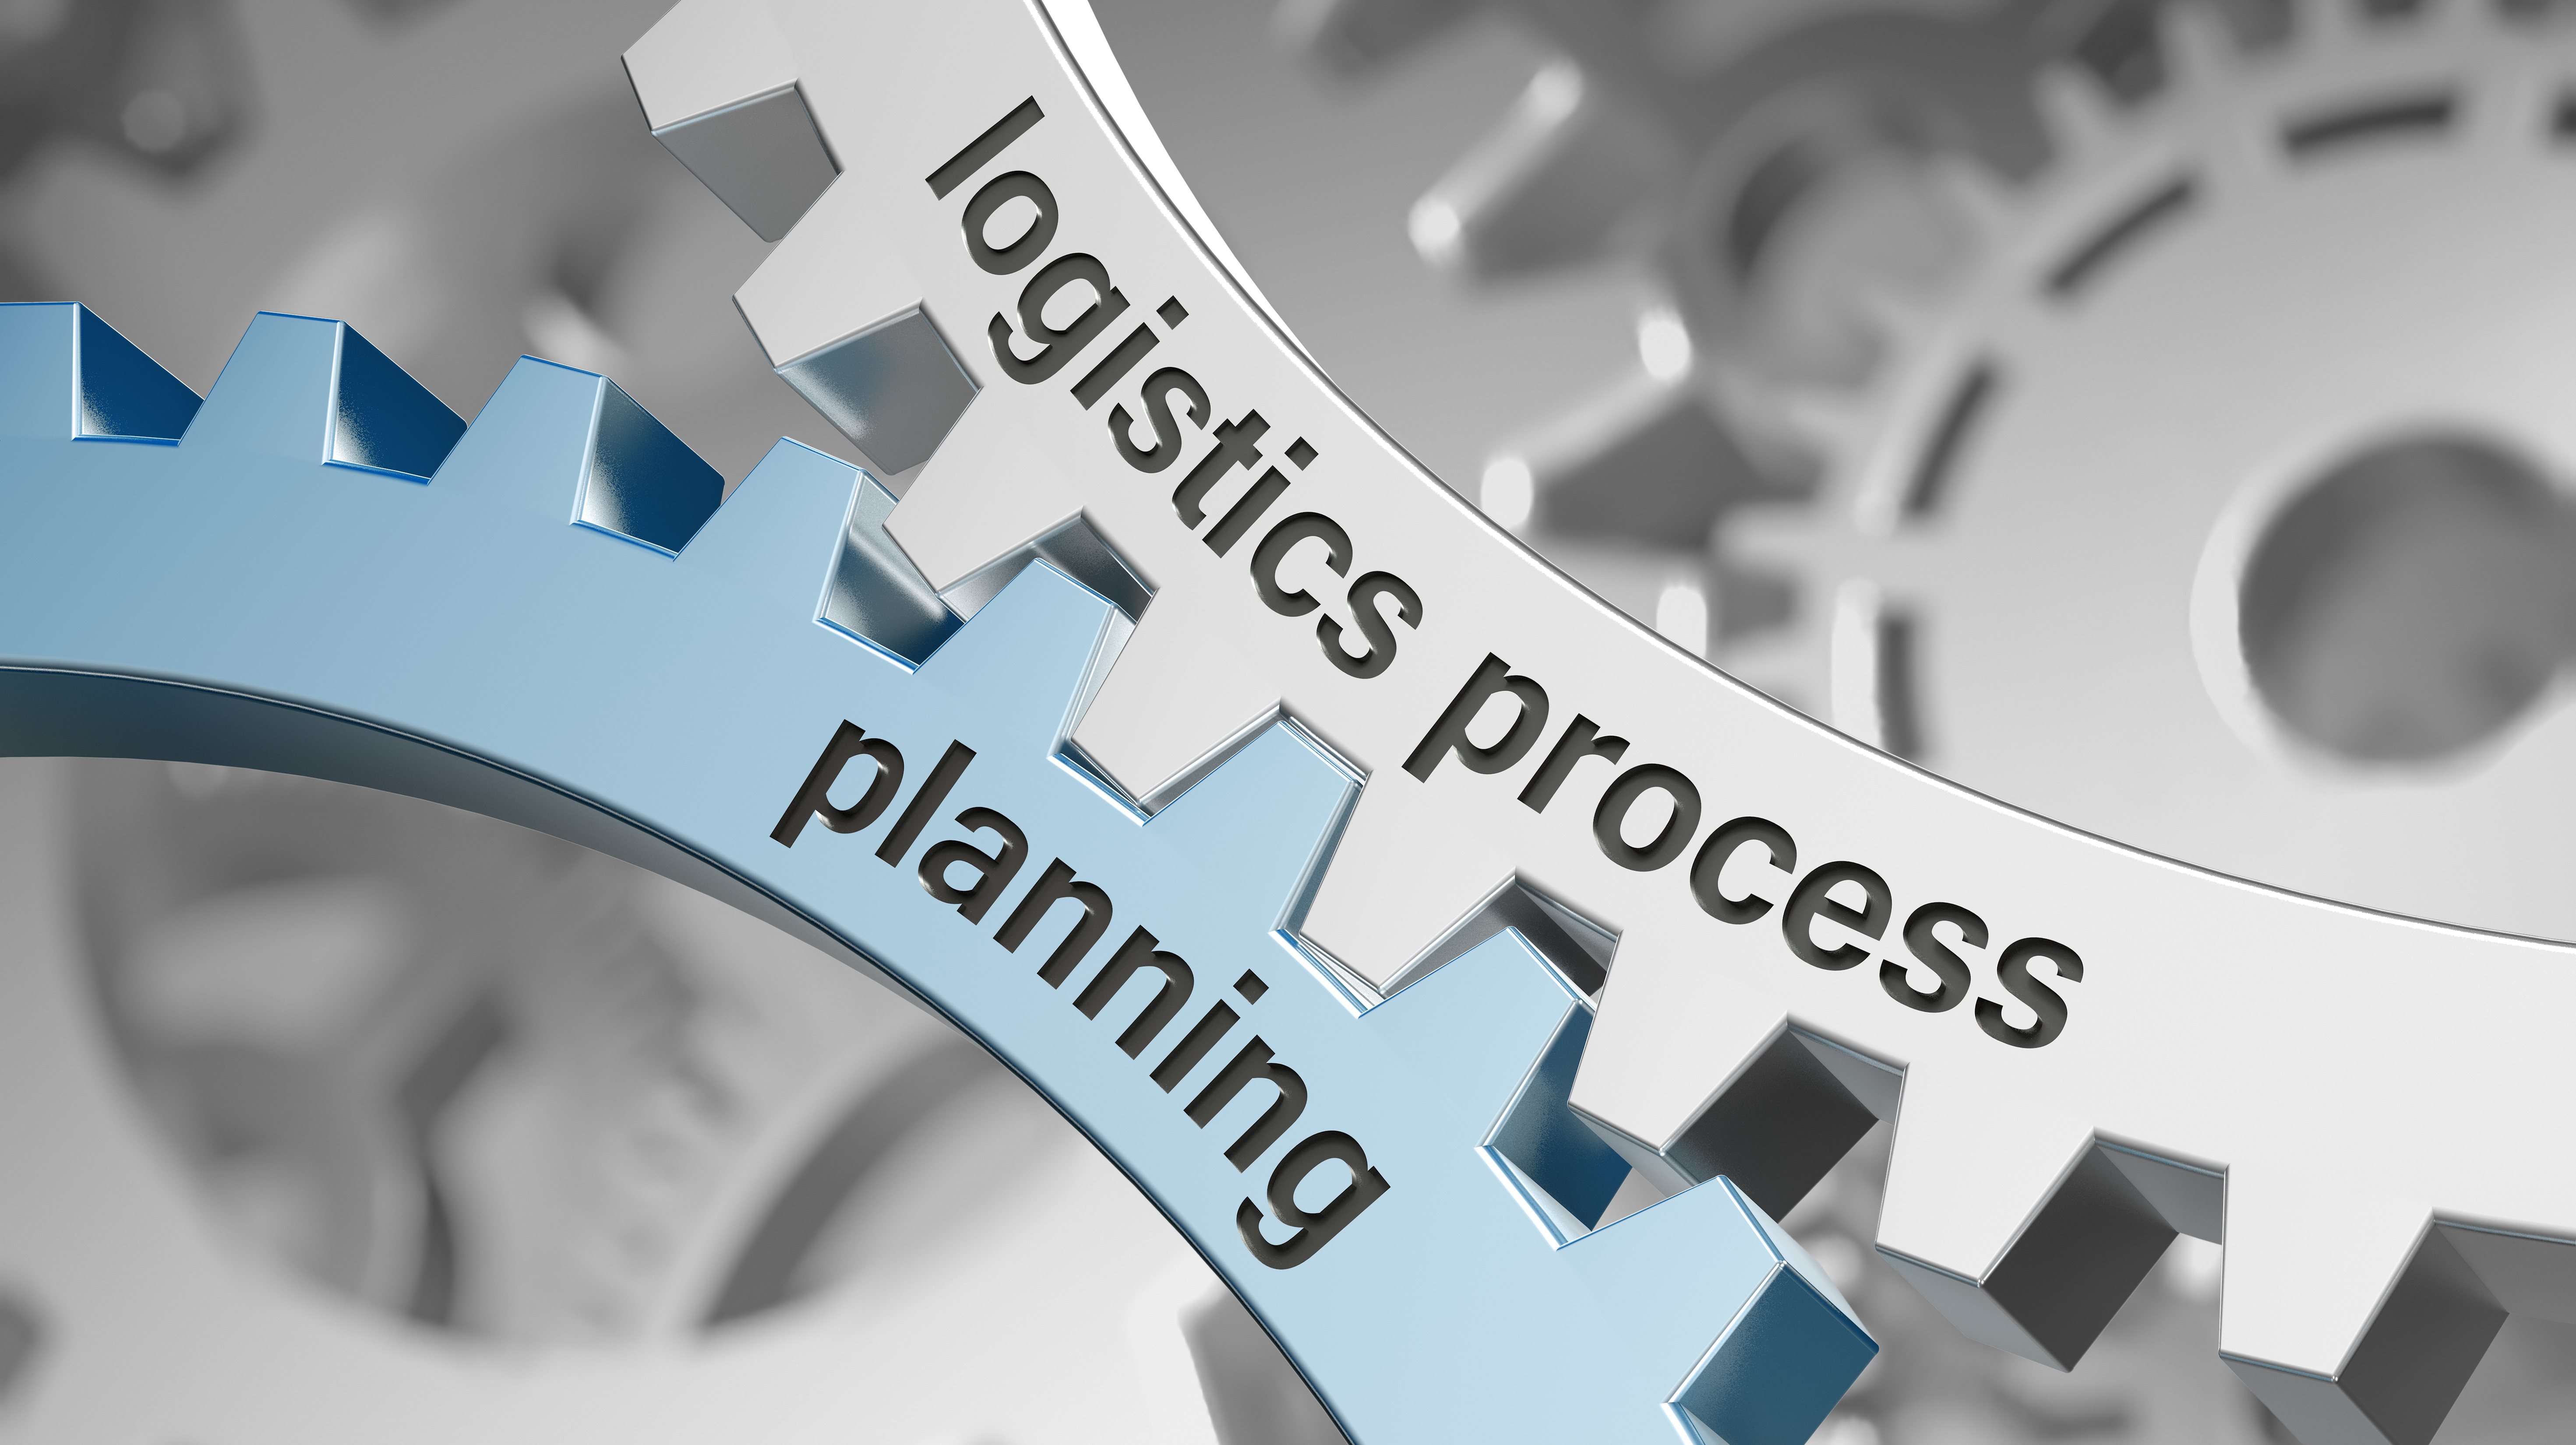 Logistics process and planning with freight management